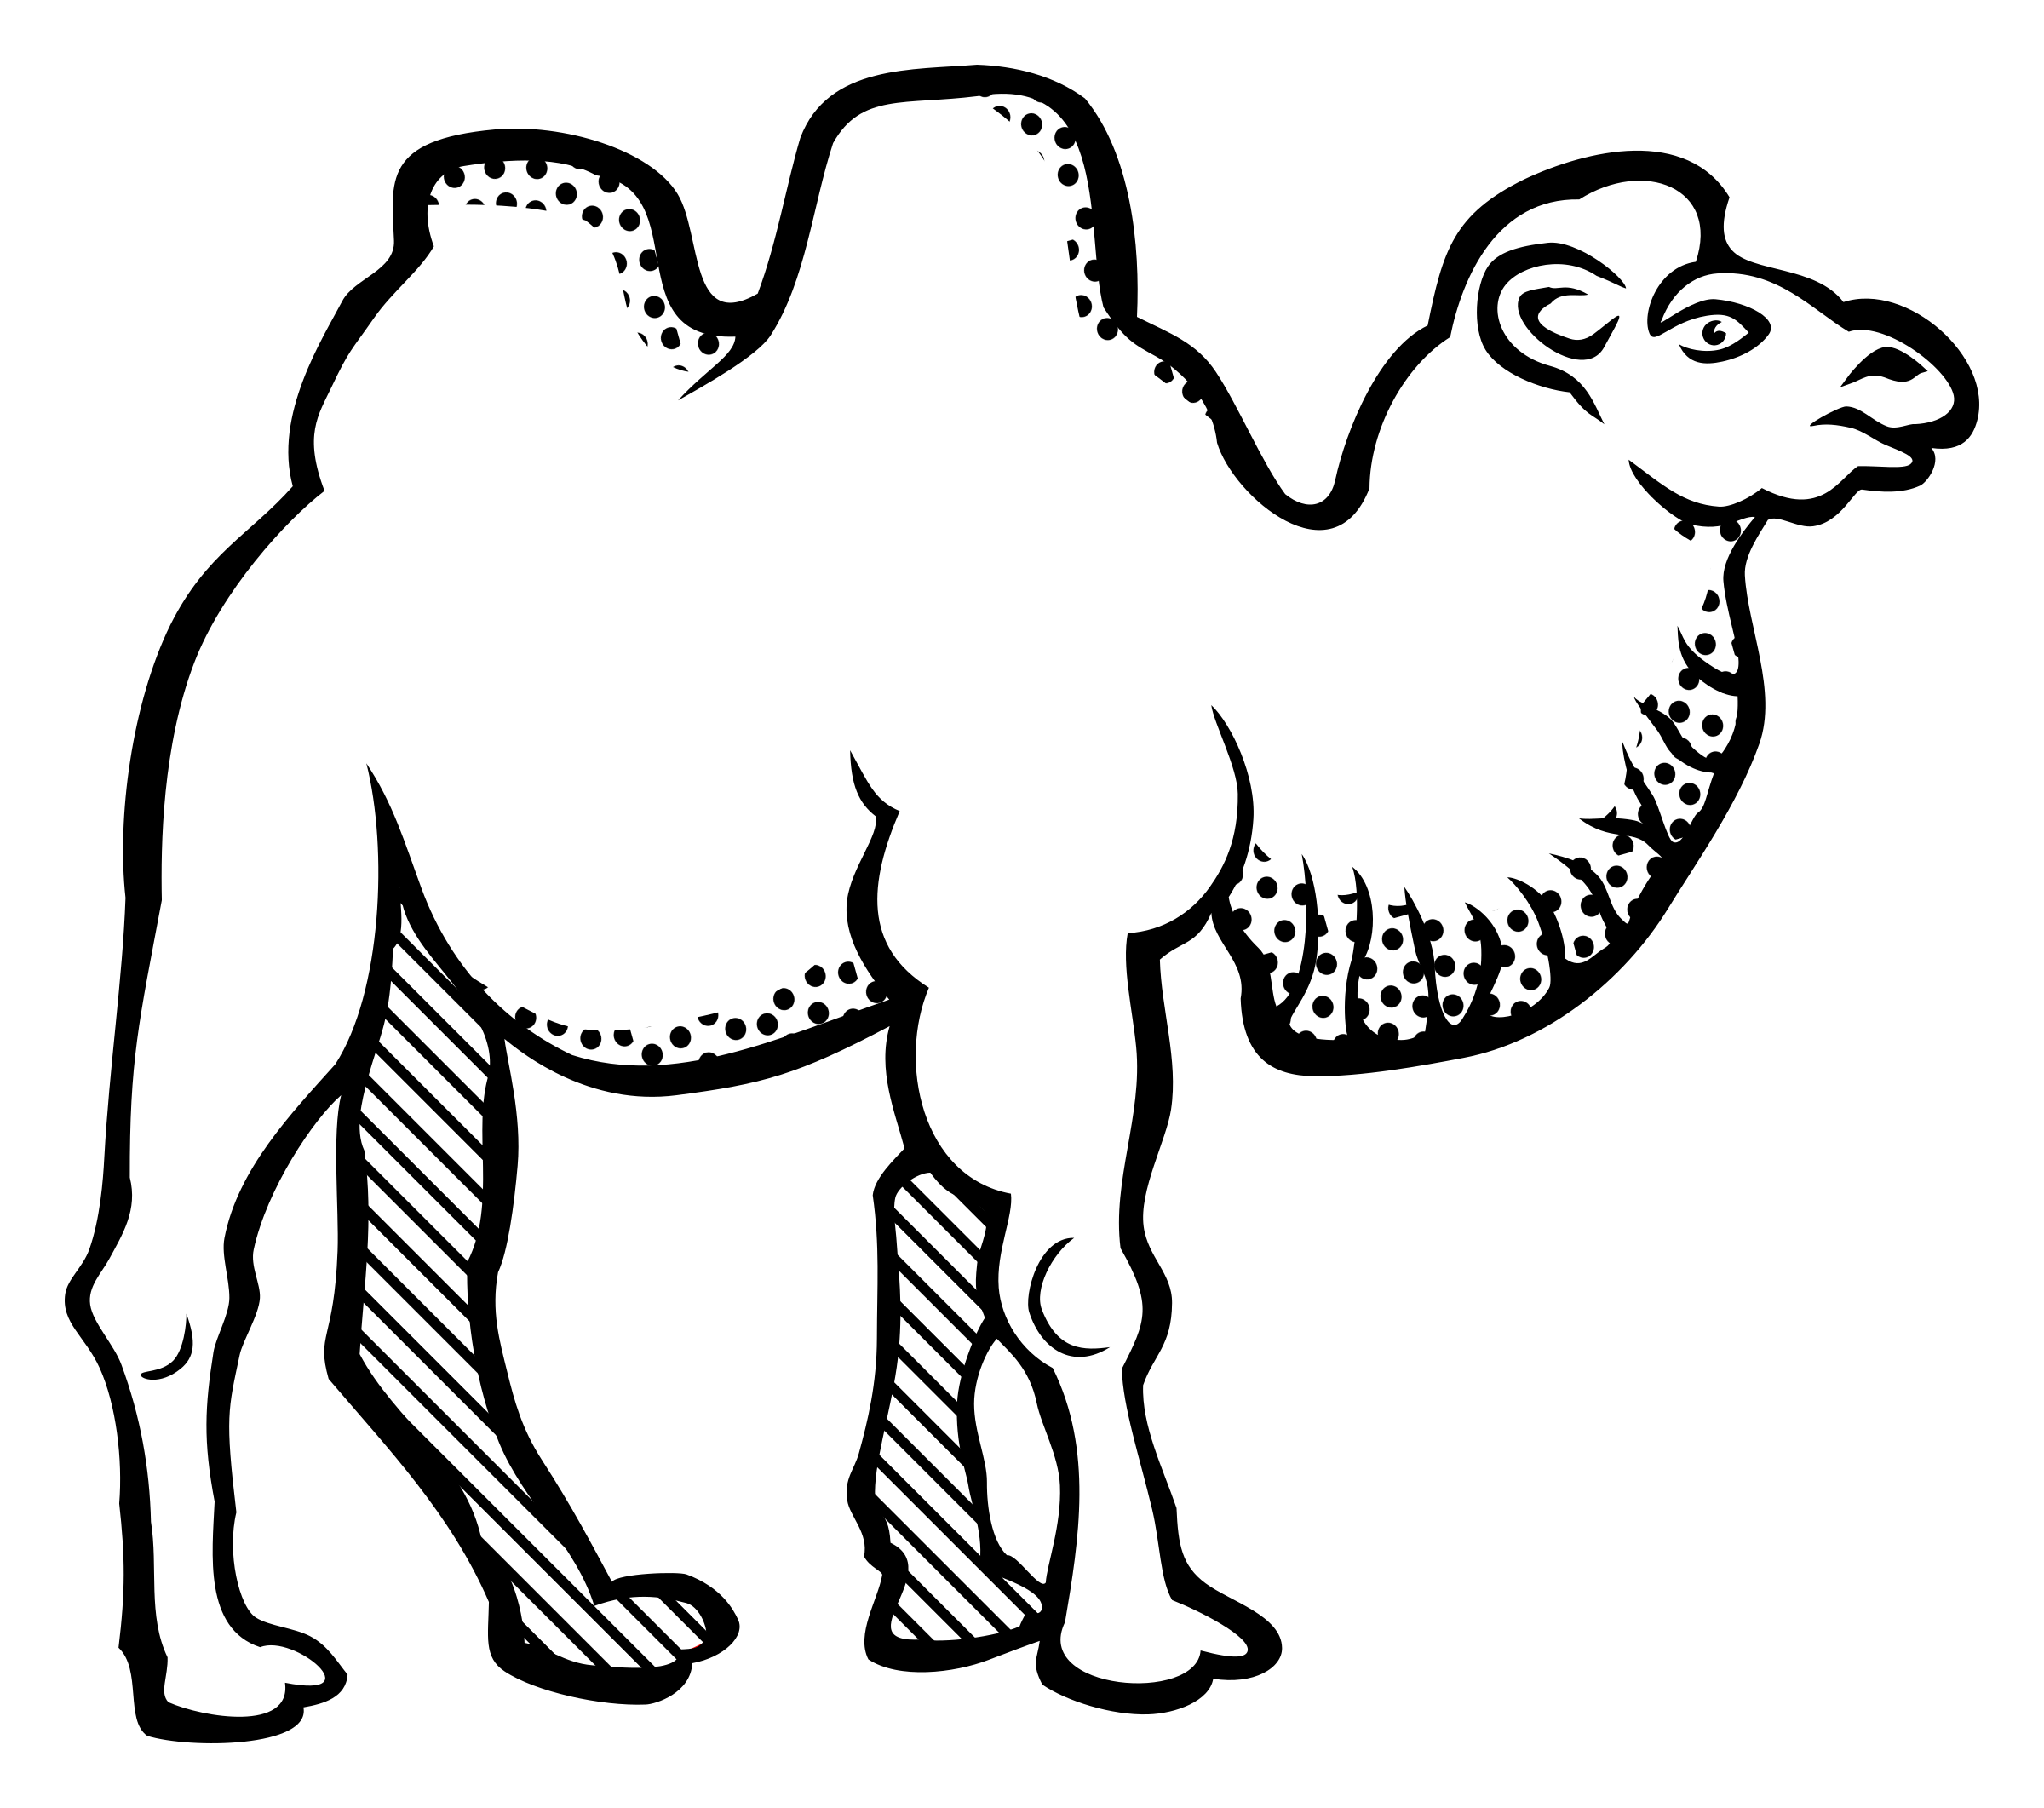 Drawing camels transparent. Best camel clipart black